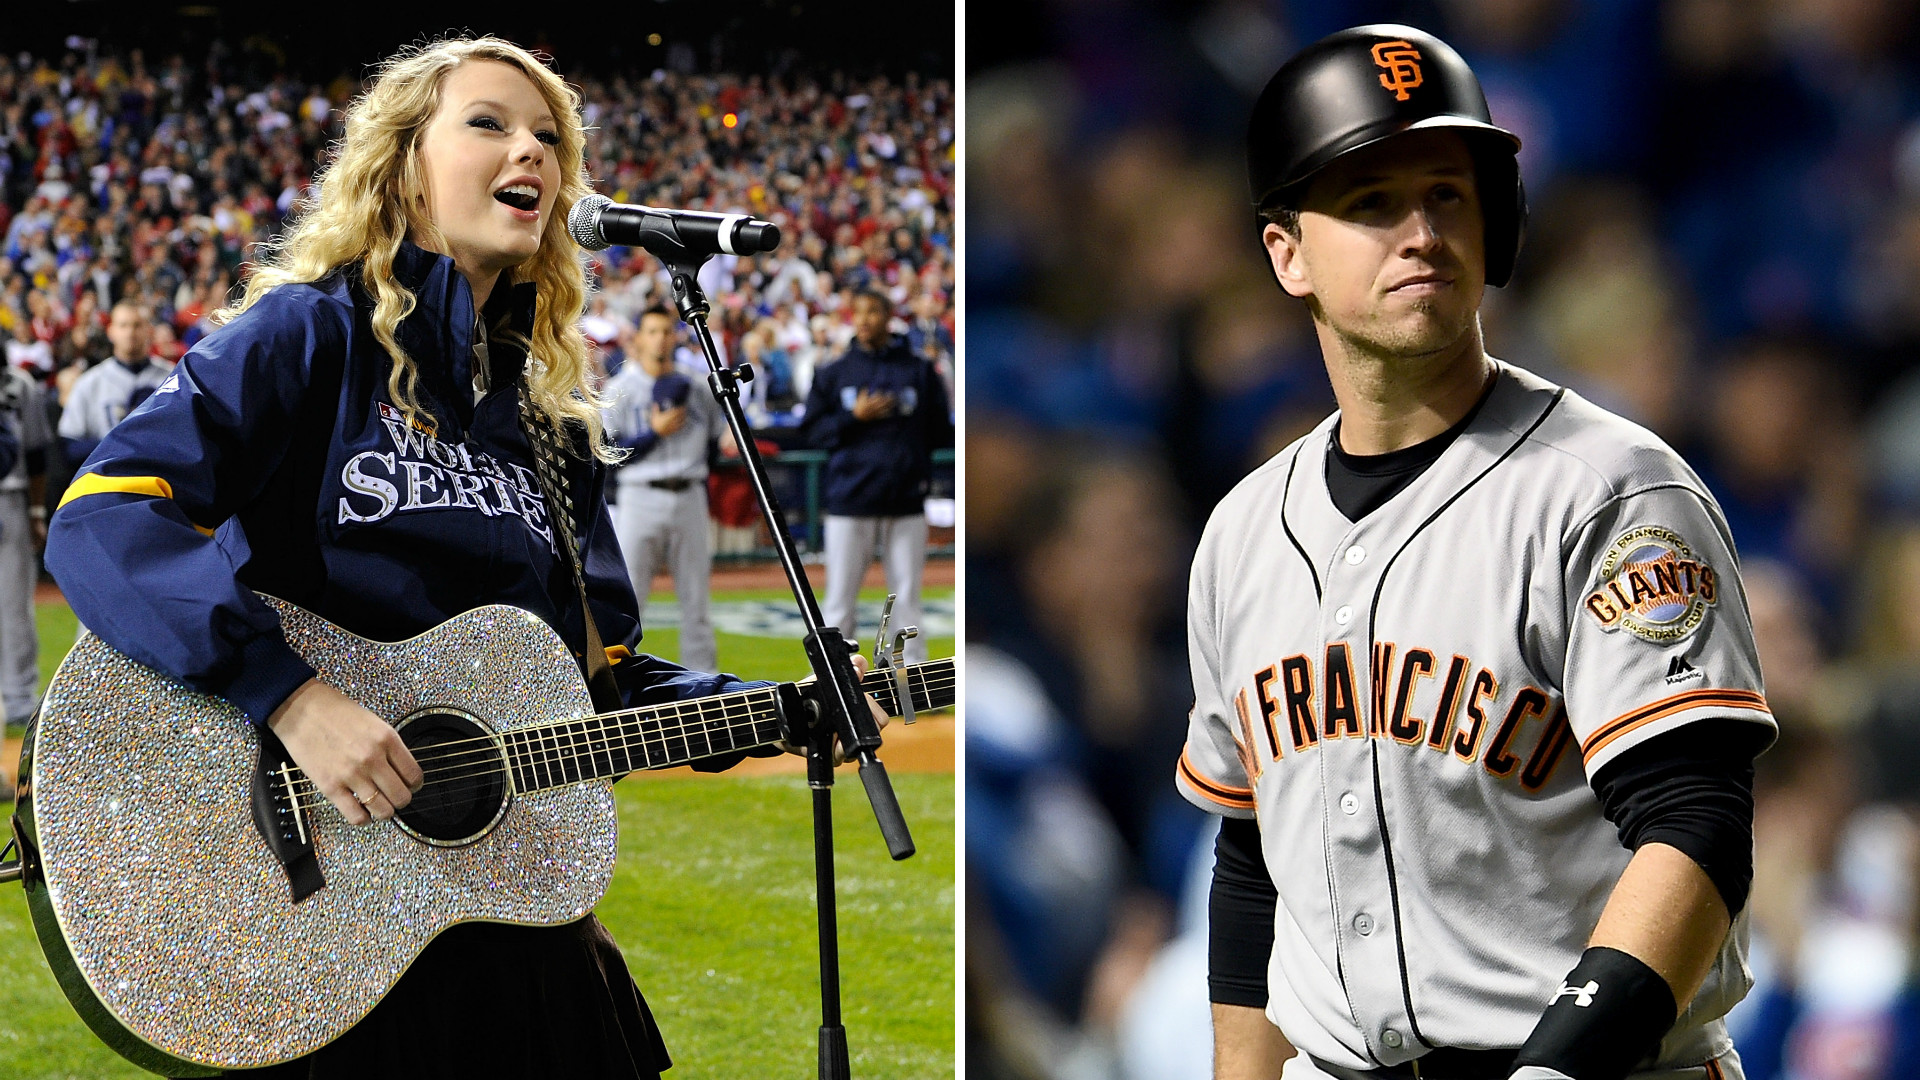 Giants fans are blaming Taylor Swift for loss to Cubs | MLB | Sporting News